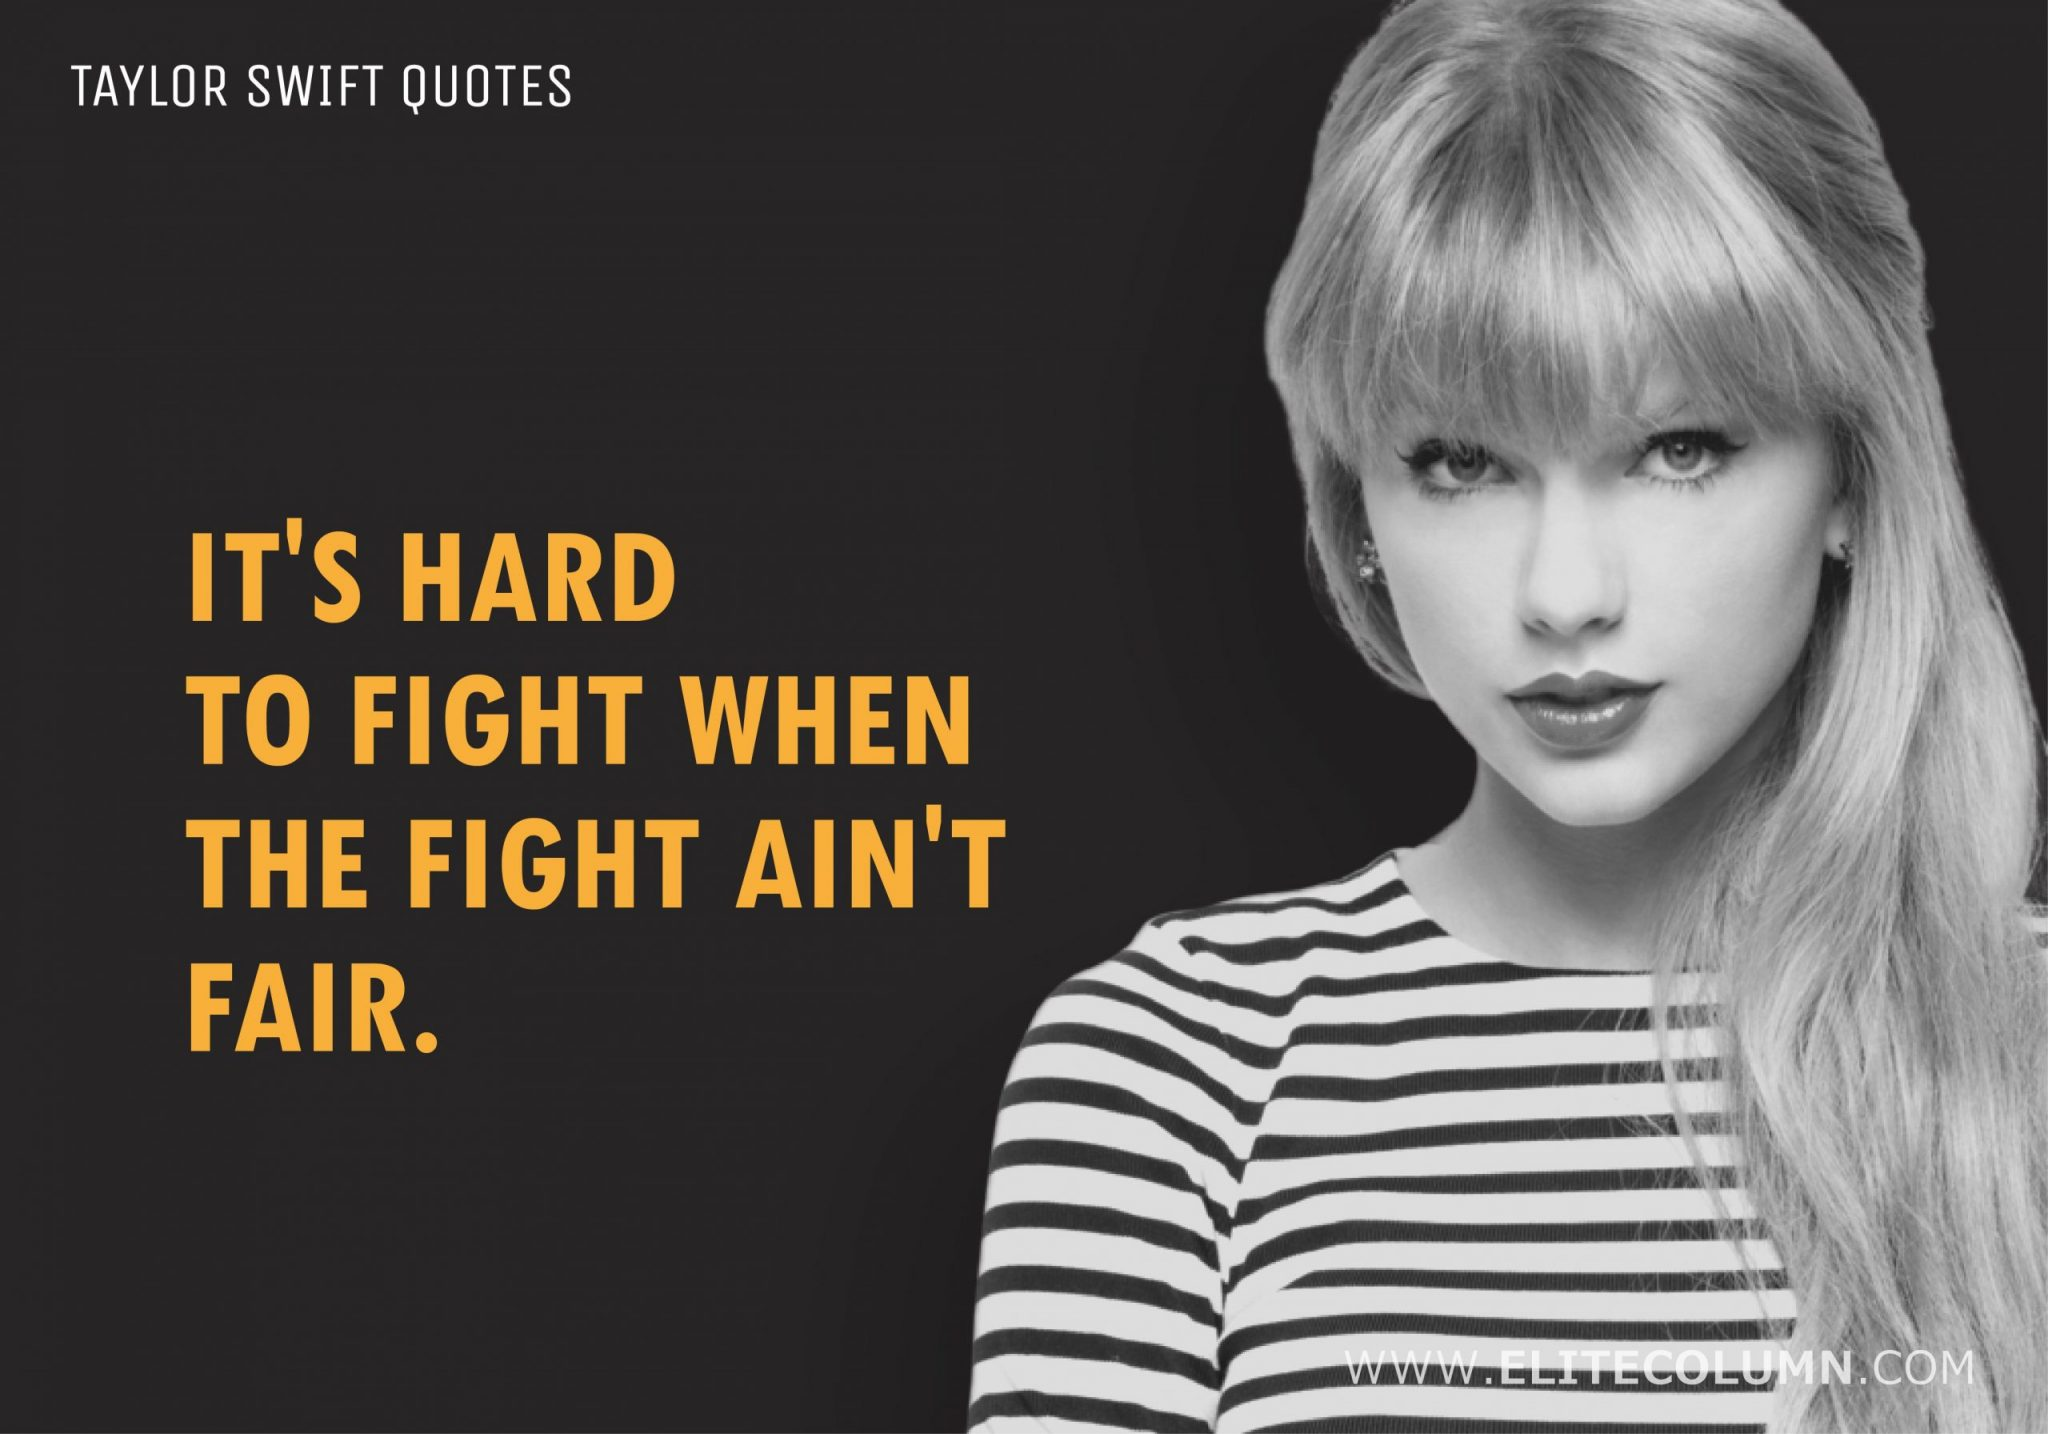 Taylor Swift Quotes (11)